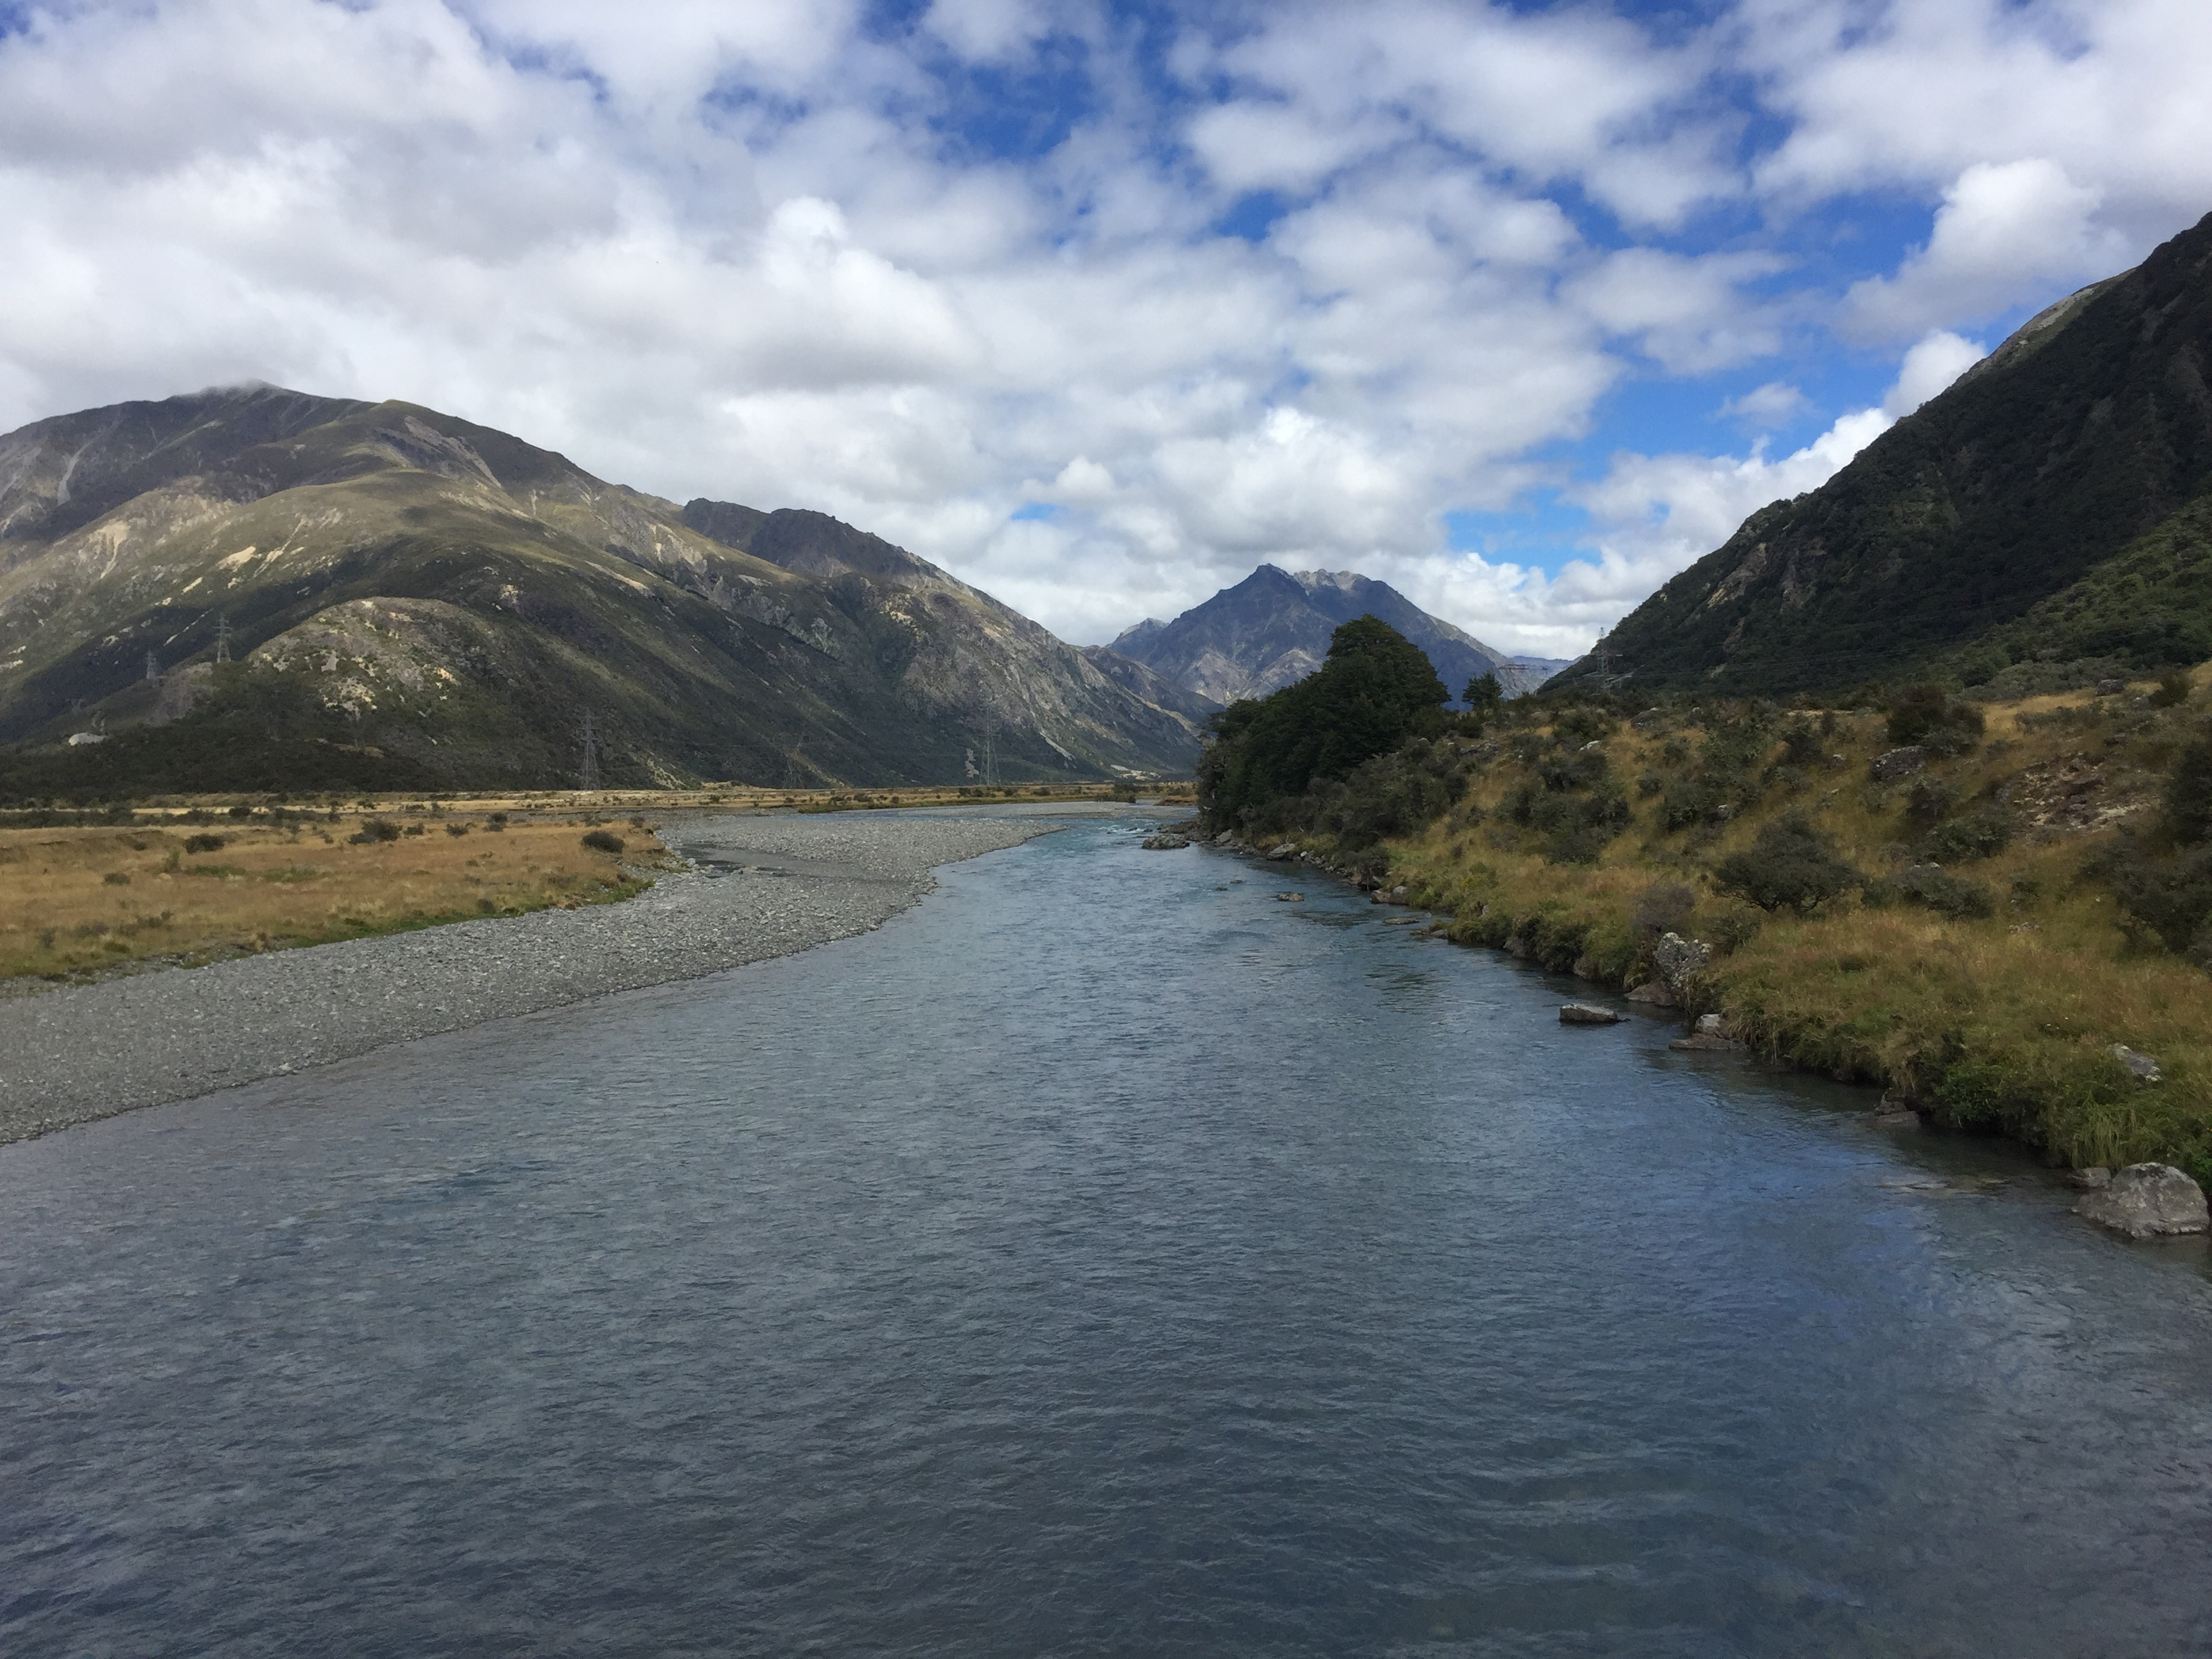 The Wairau River